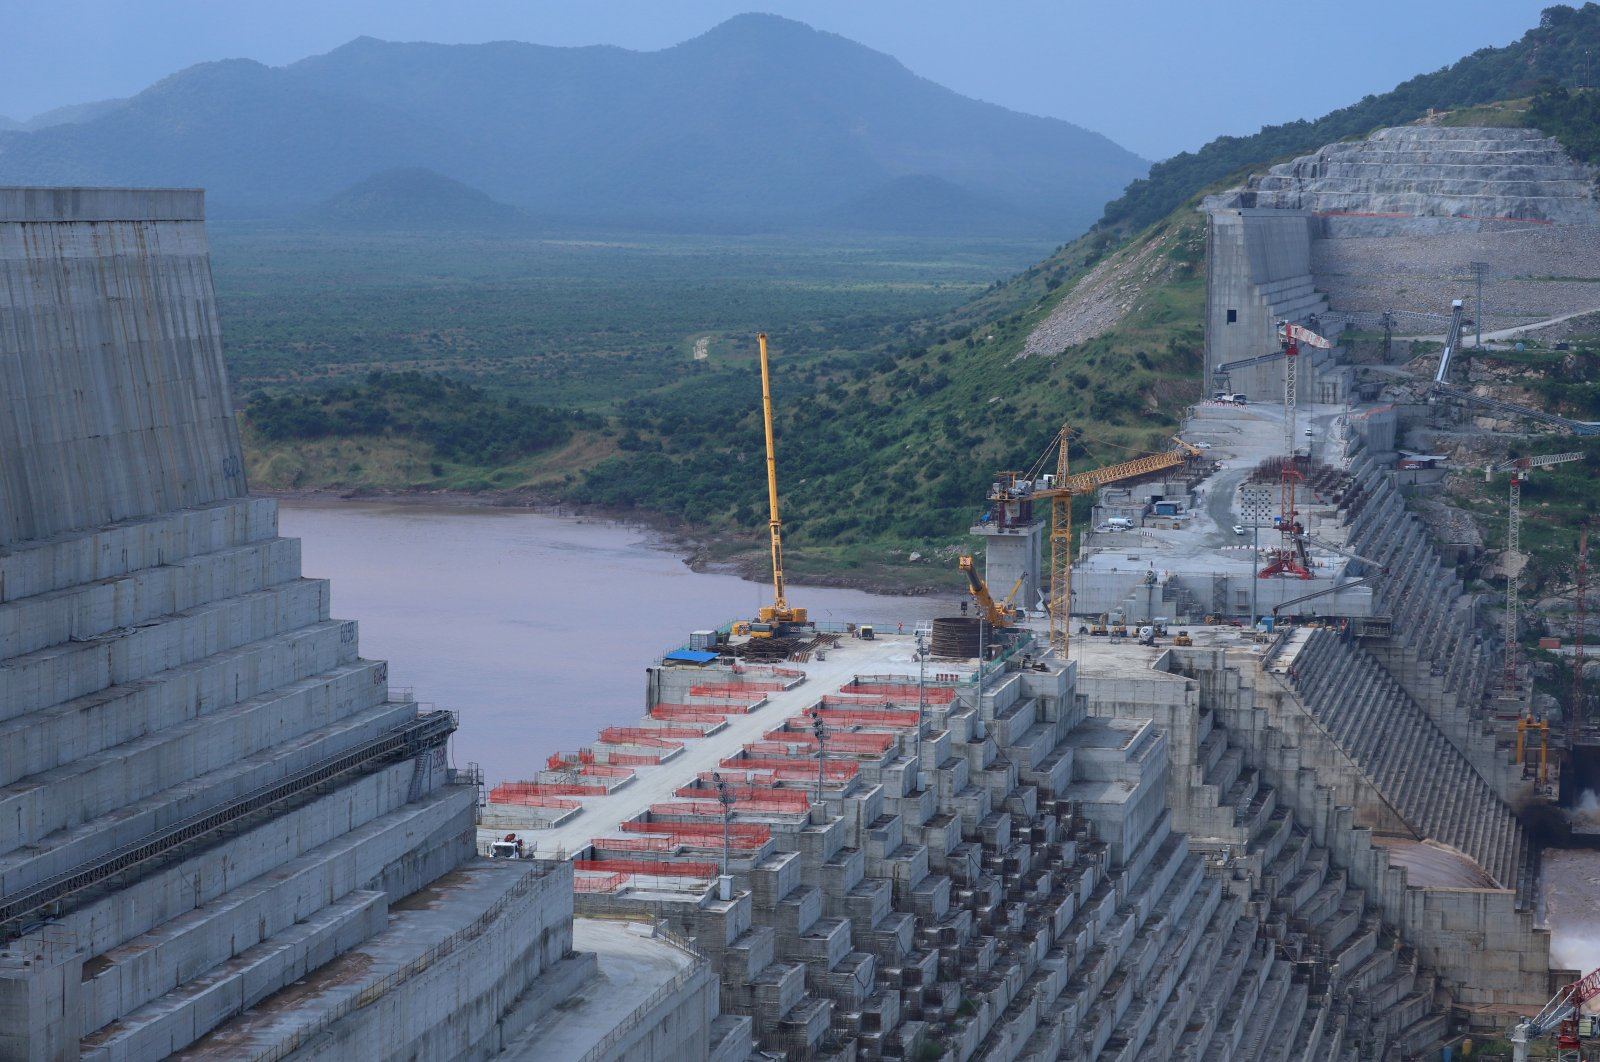 Ethiopia's Grand Renaissance Dam is seen as it undergoes construction work on the Nile in Guba Woreda, the Benishangul Gumuz Region, Ethiopia, Sept. 26, 2019. (Reuters Photo)